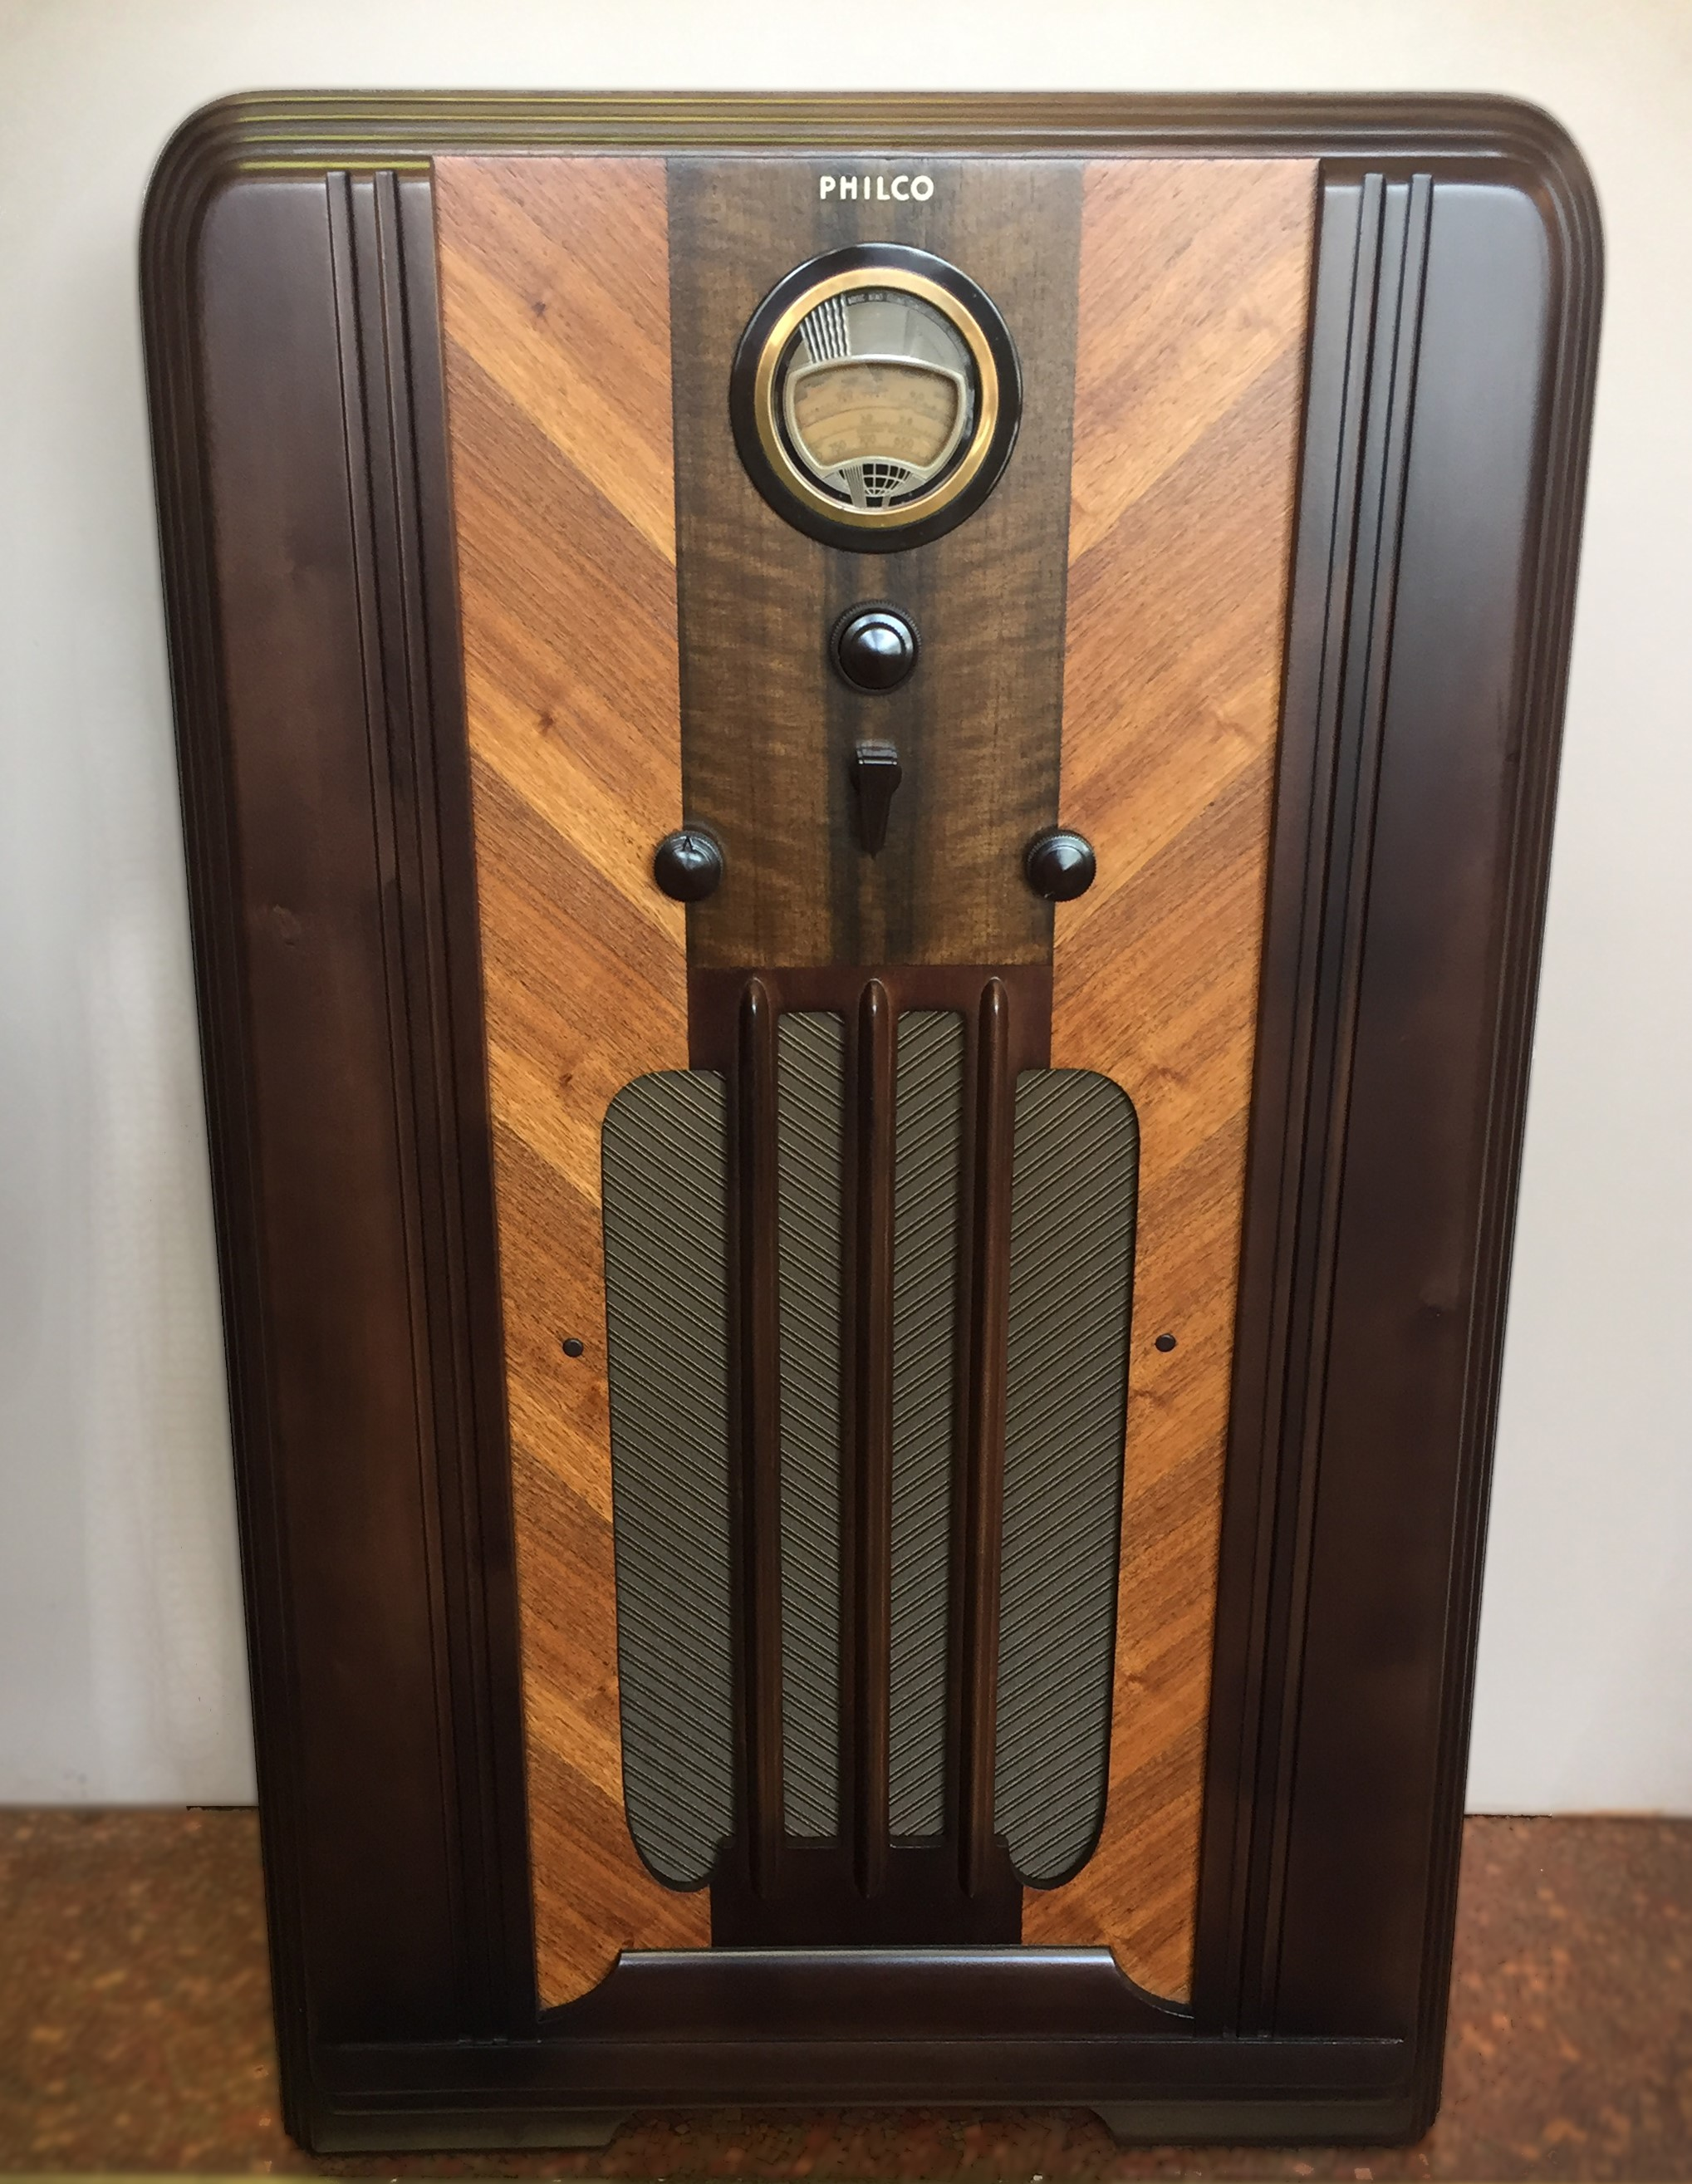 Rca Under Cabi  Tv together with Updatingrestoring An Old Stereo Console Diy Part 2 Demo besides 401248117885 likewise Console Radios moreover Radiola18 2. on antique rca radio parts